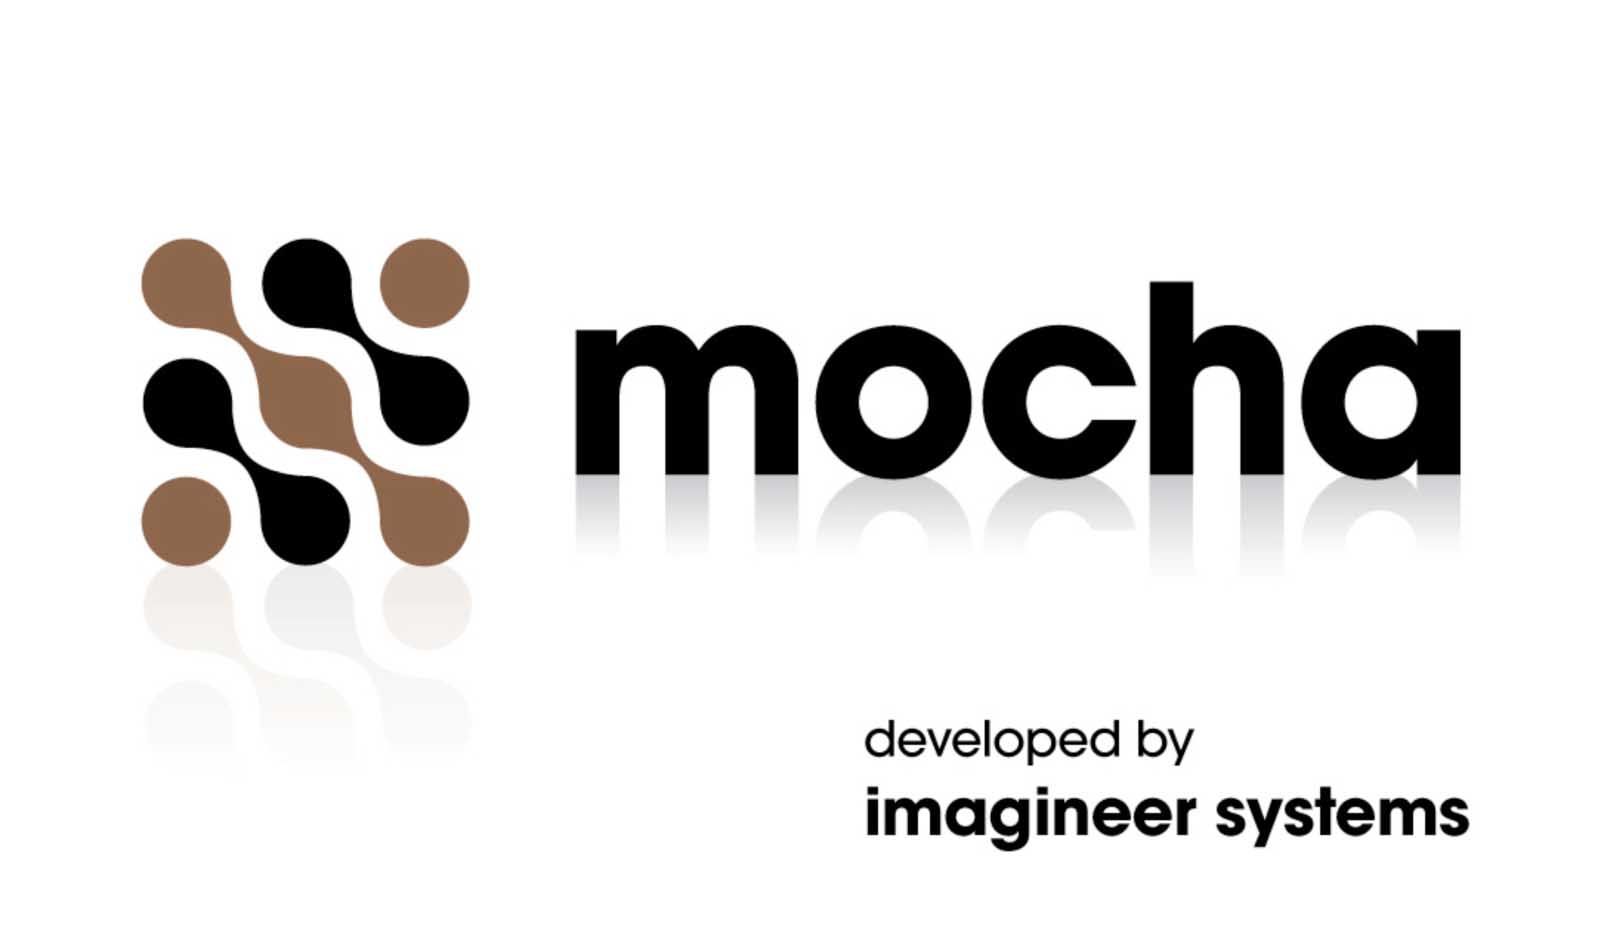 mocha developed by imagineer systems